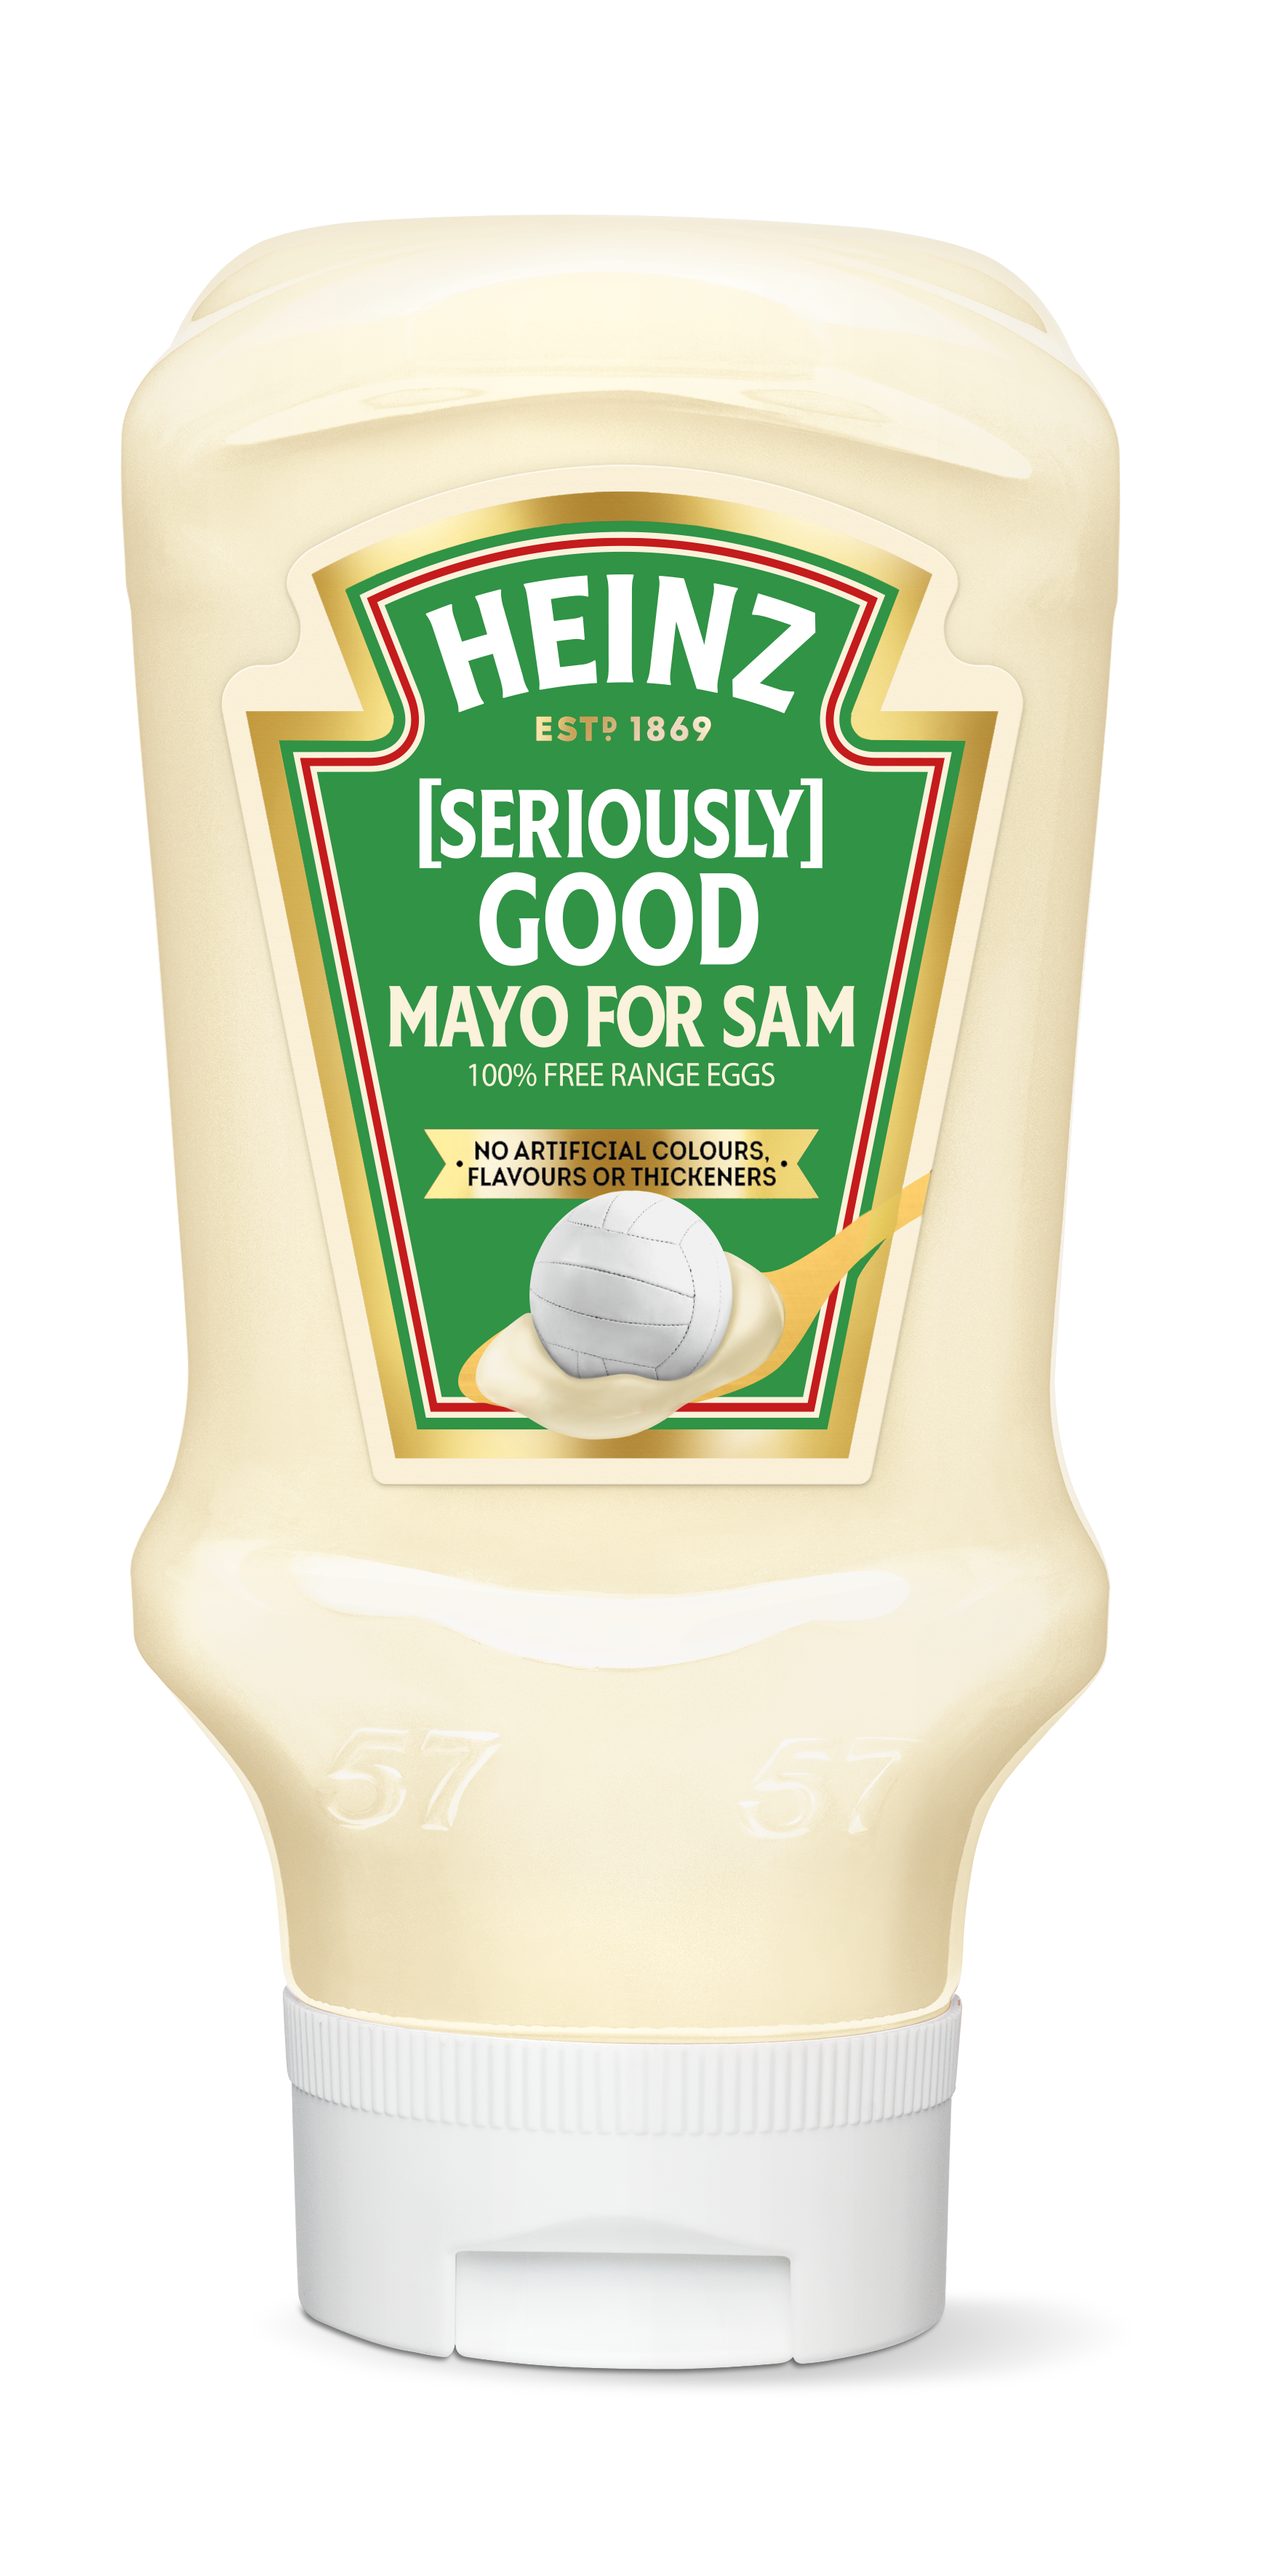 Photograph of Heinz [Seriously] Good Mayonnaise product